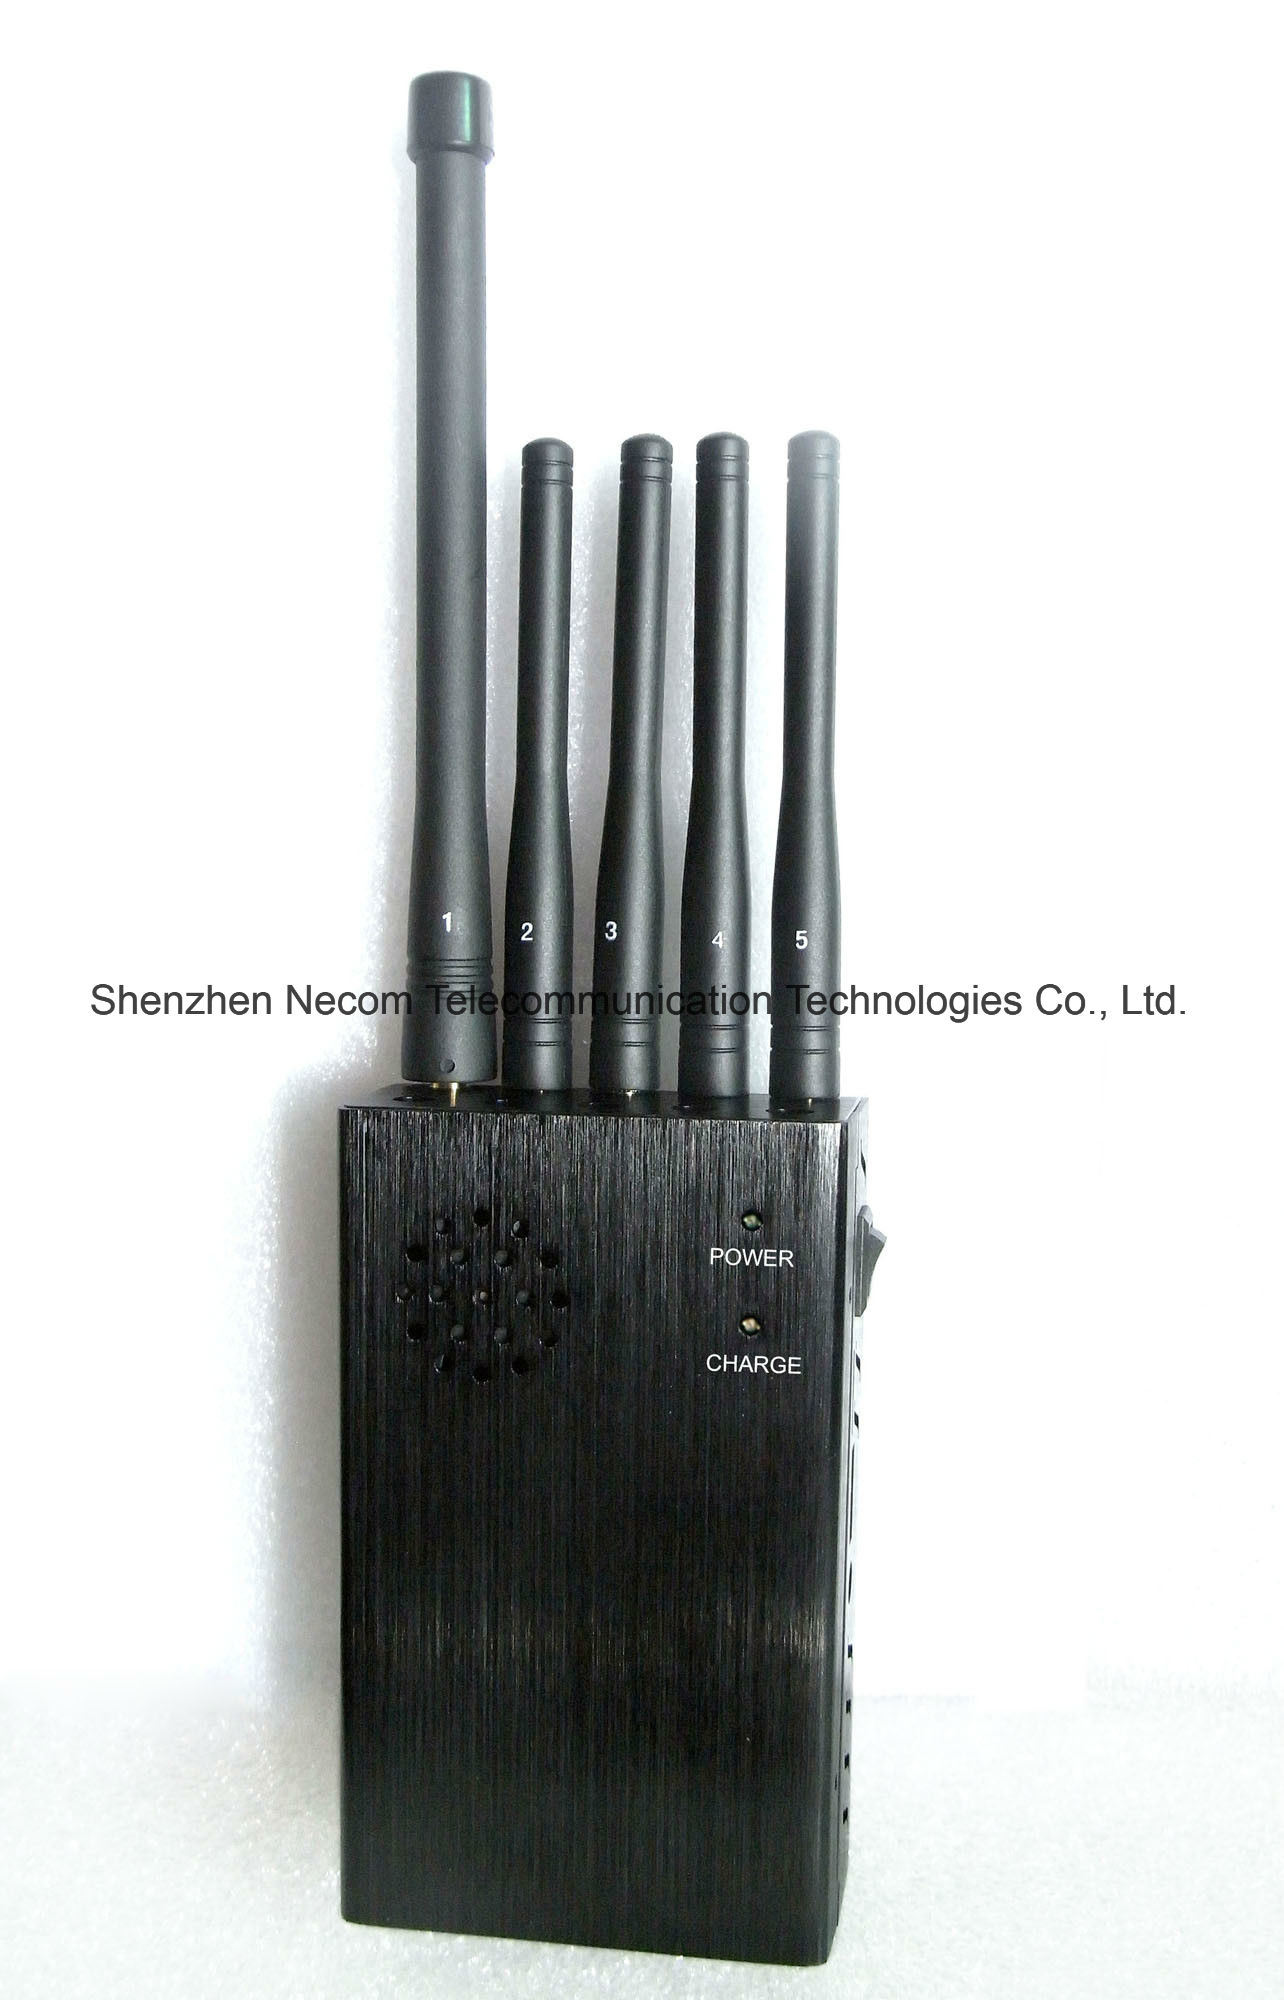 China Portable GSM Cellular Signal Jammer / Blocker, Cell Phone 5 Bands Jammer/Blocker for 2g+3G+WiFi+Lojack - China 5 Band Signal Blockers, Five Antennas Jammers